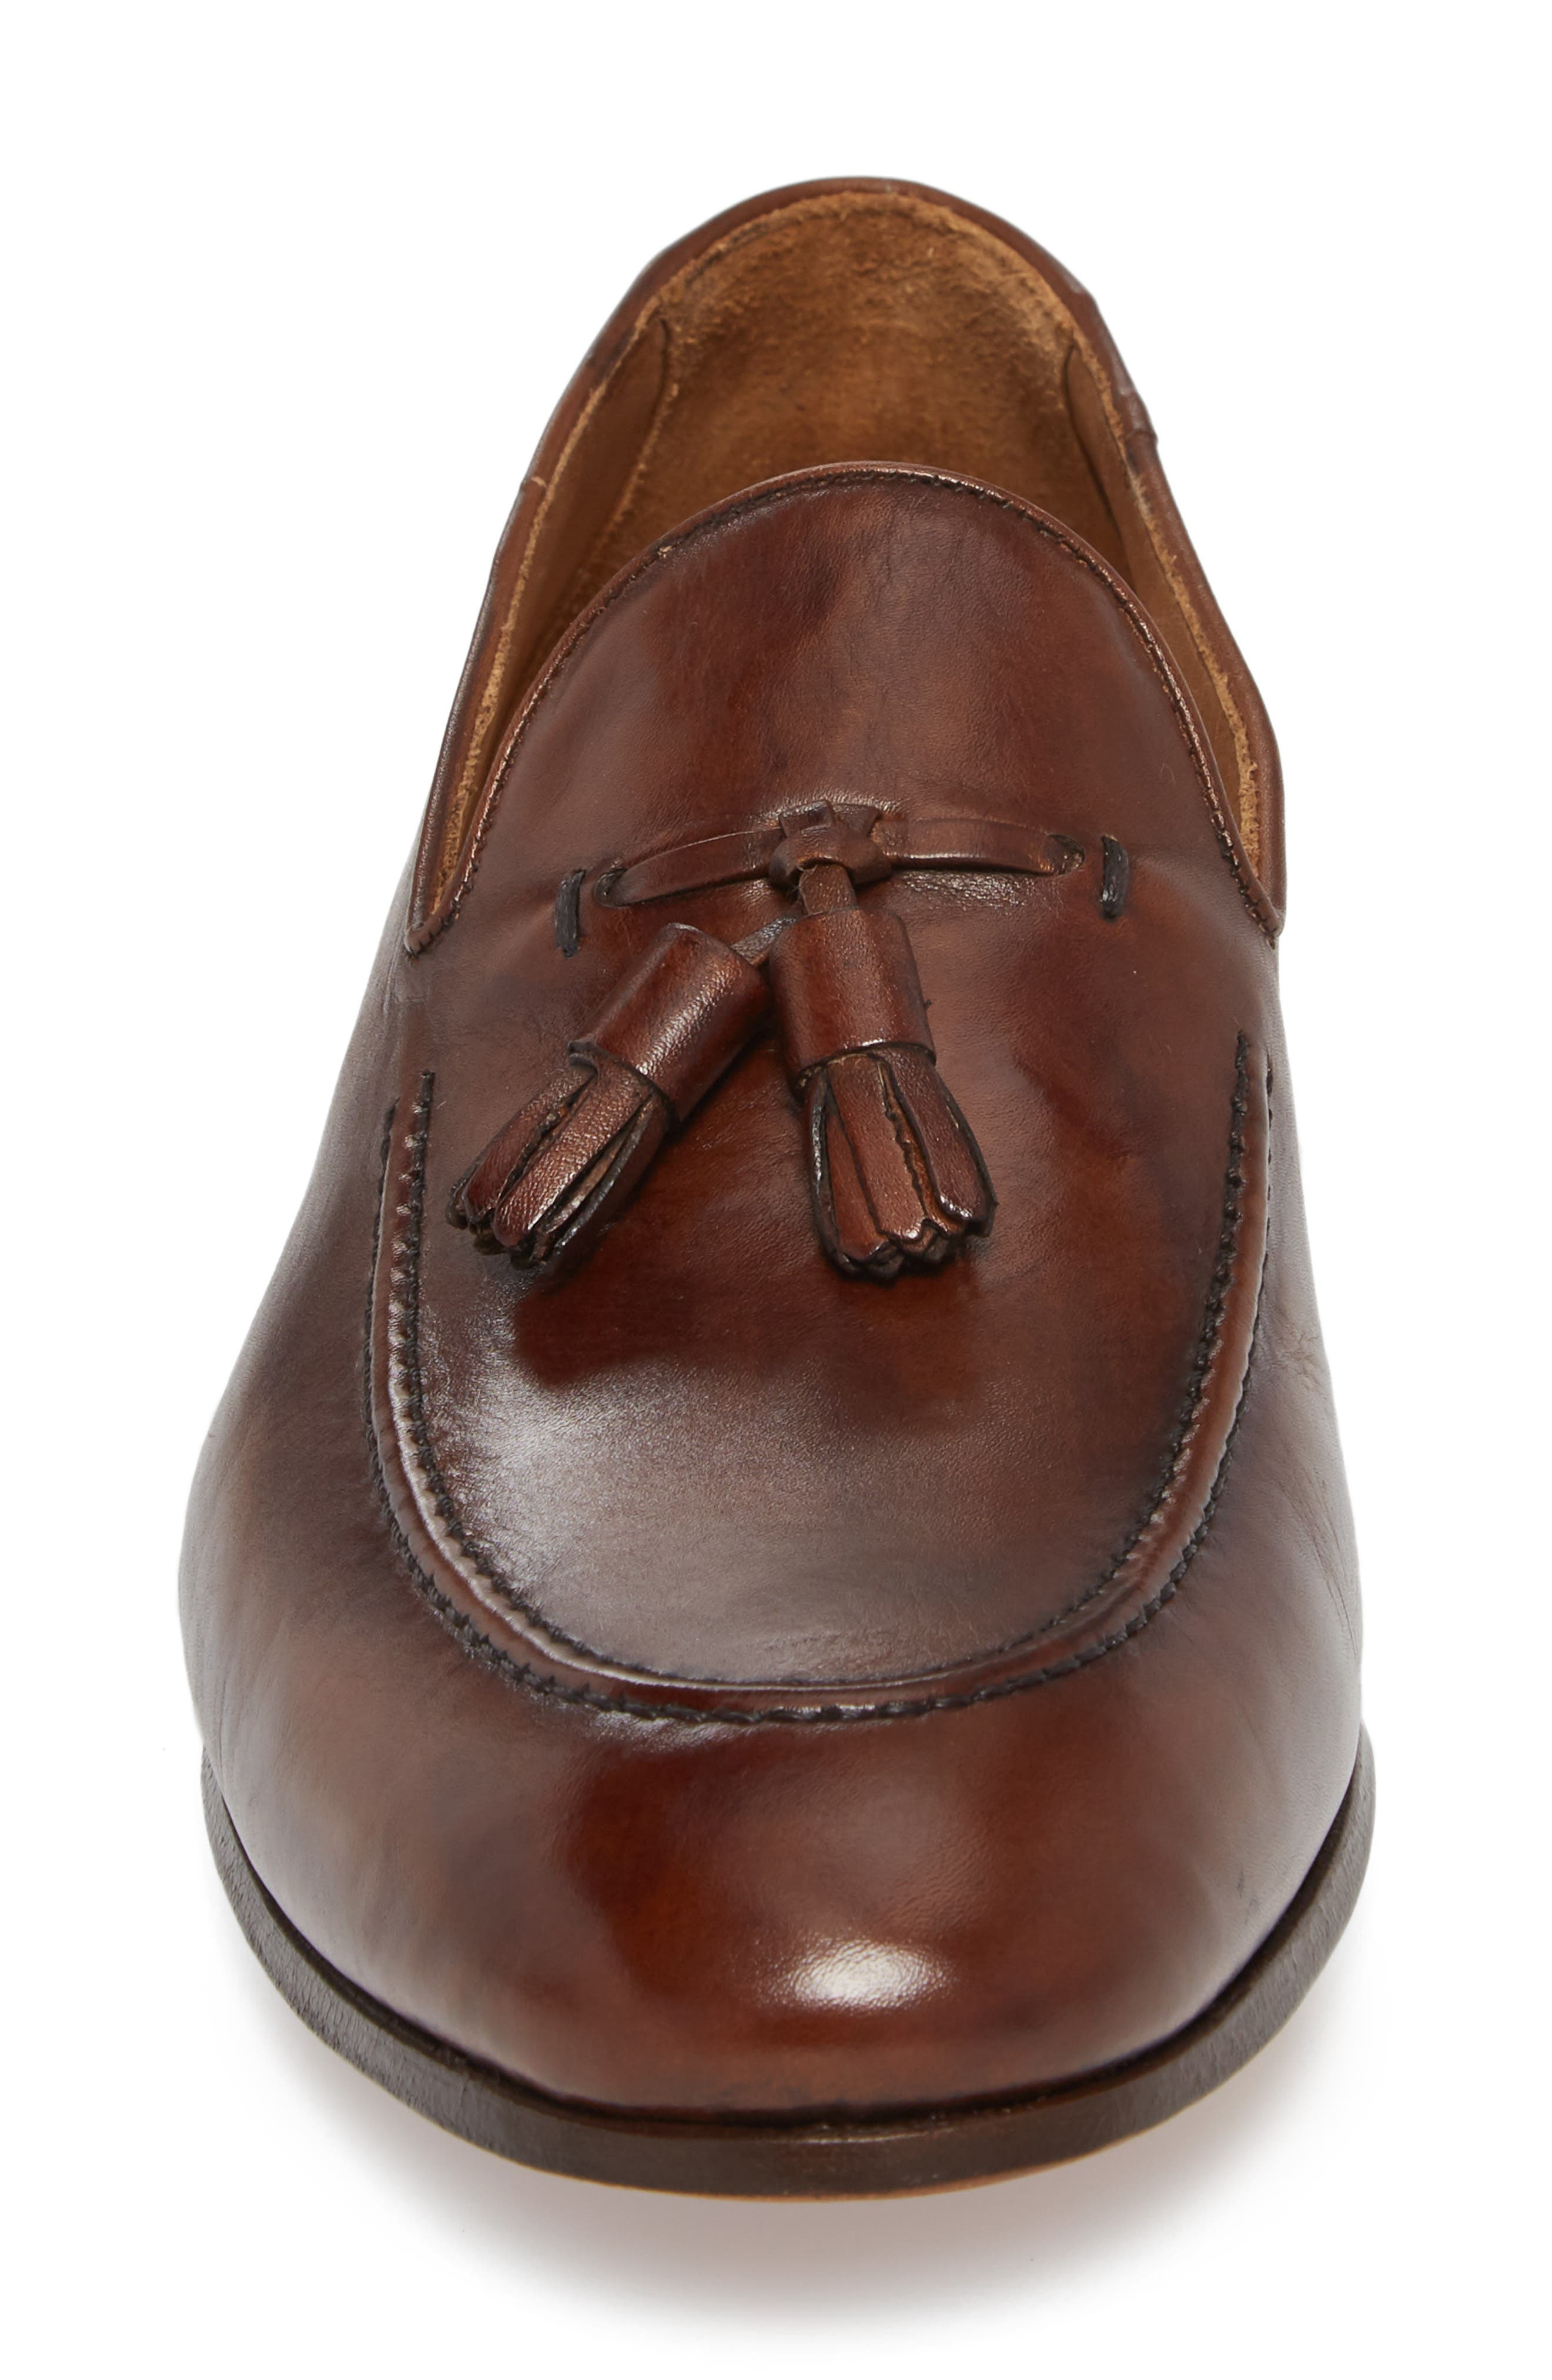 Ario Tassel Loafer,                             Alternate thumbnail 4, color,                             BROWN LEATHER